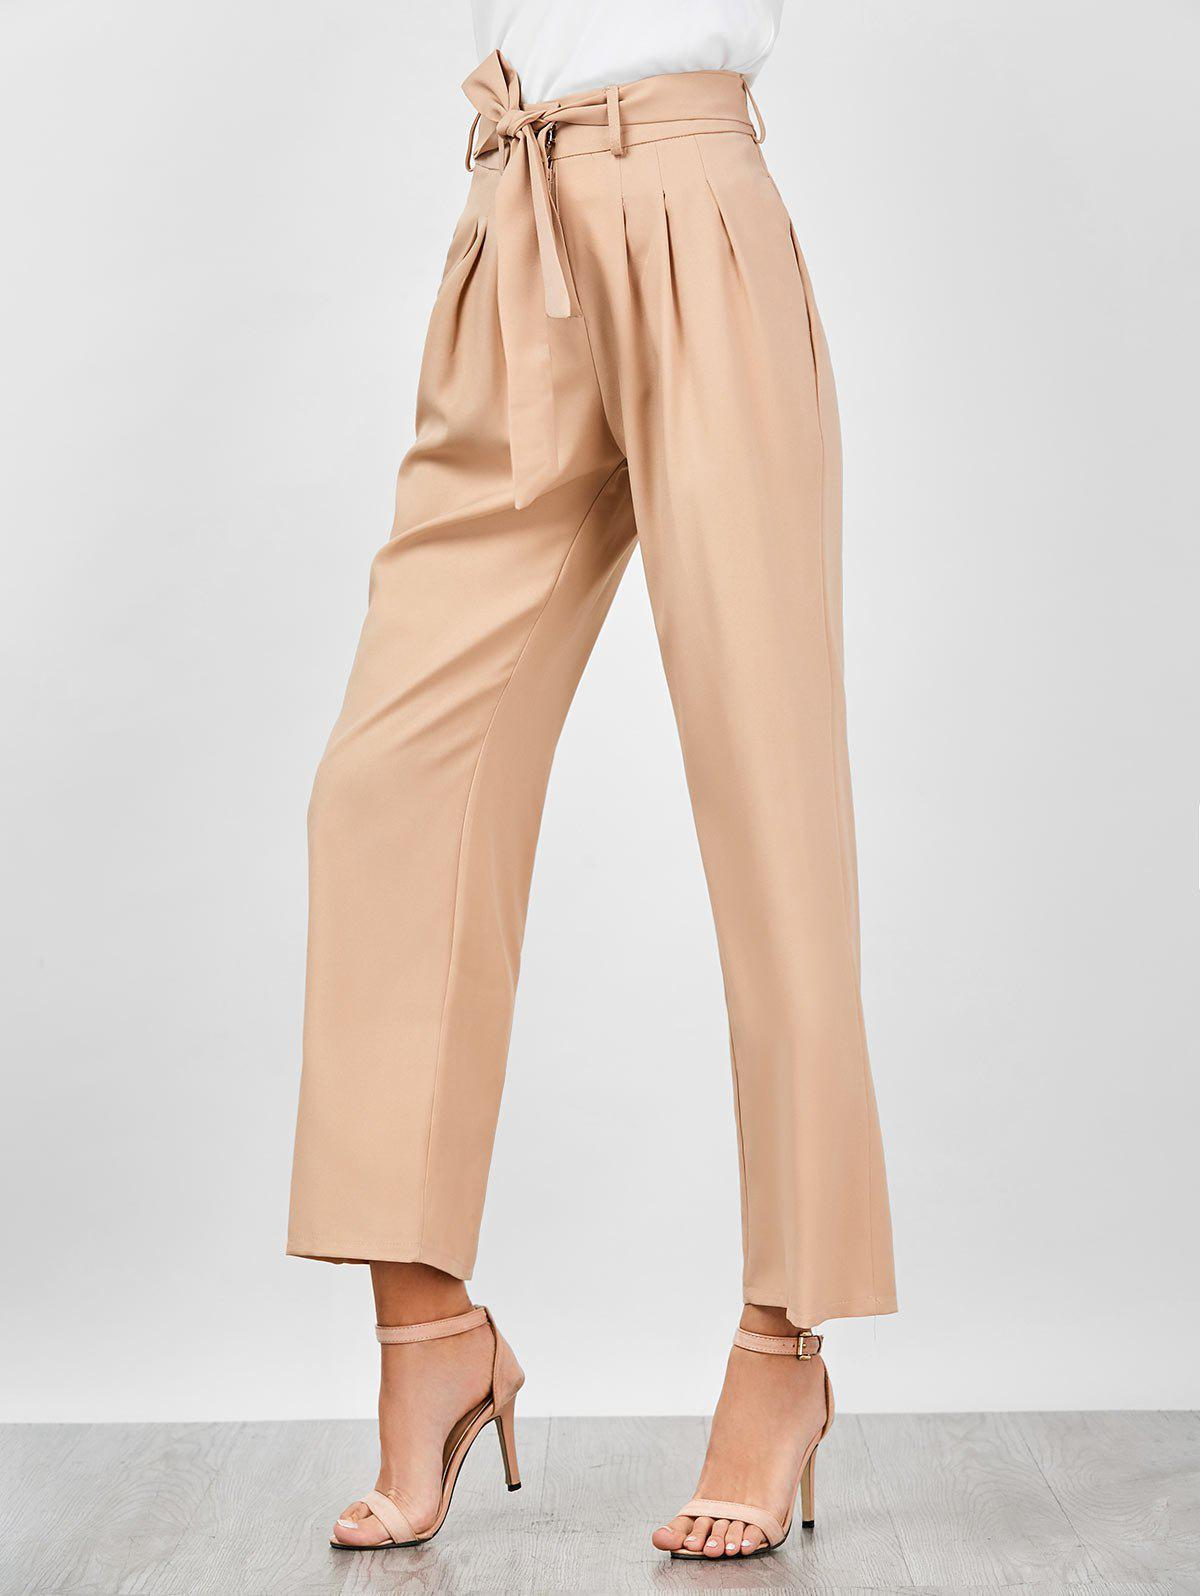 High Waisted Belted Wide Leg Pants - APRICOT XL